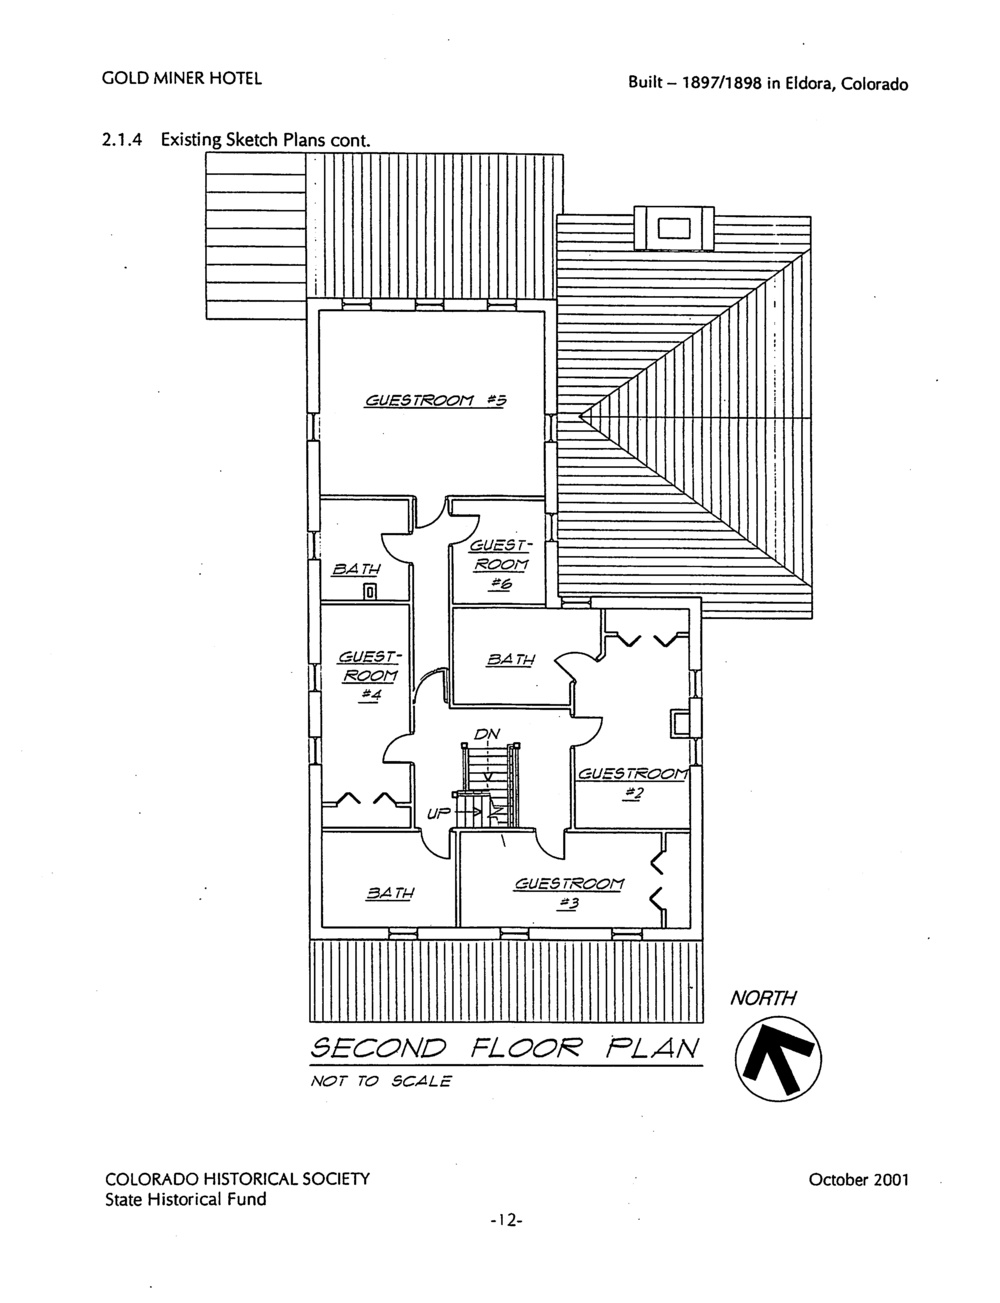 floor plan second ver 2.jpg